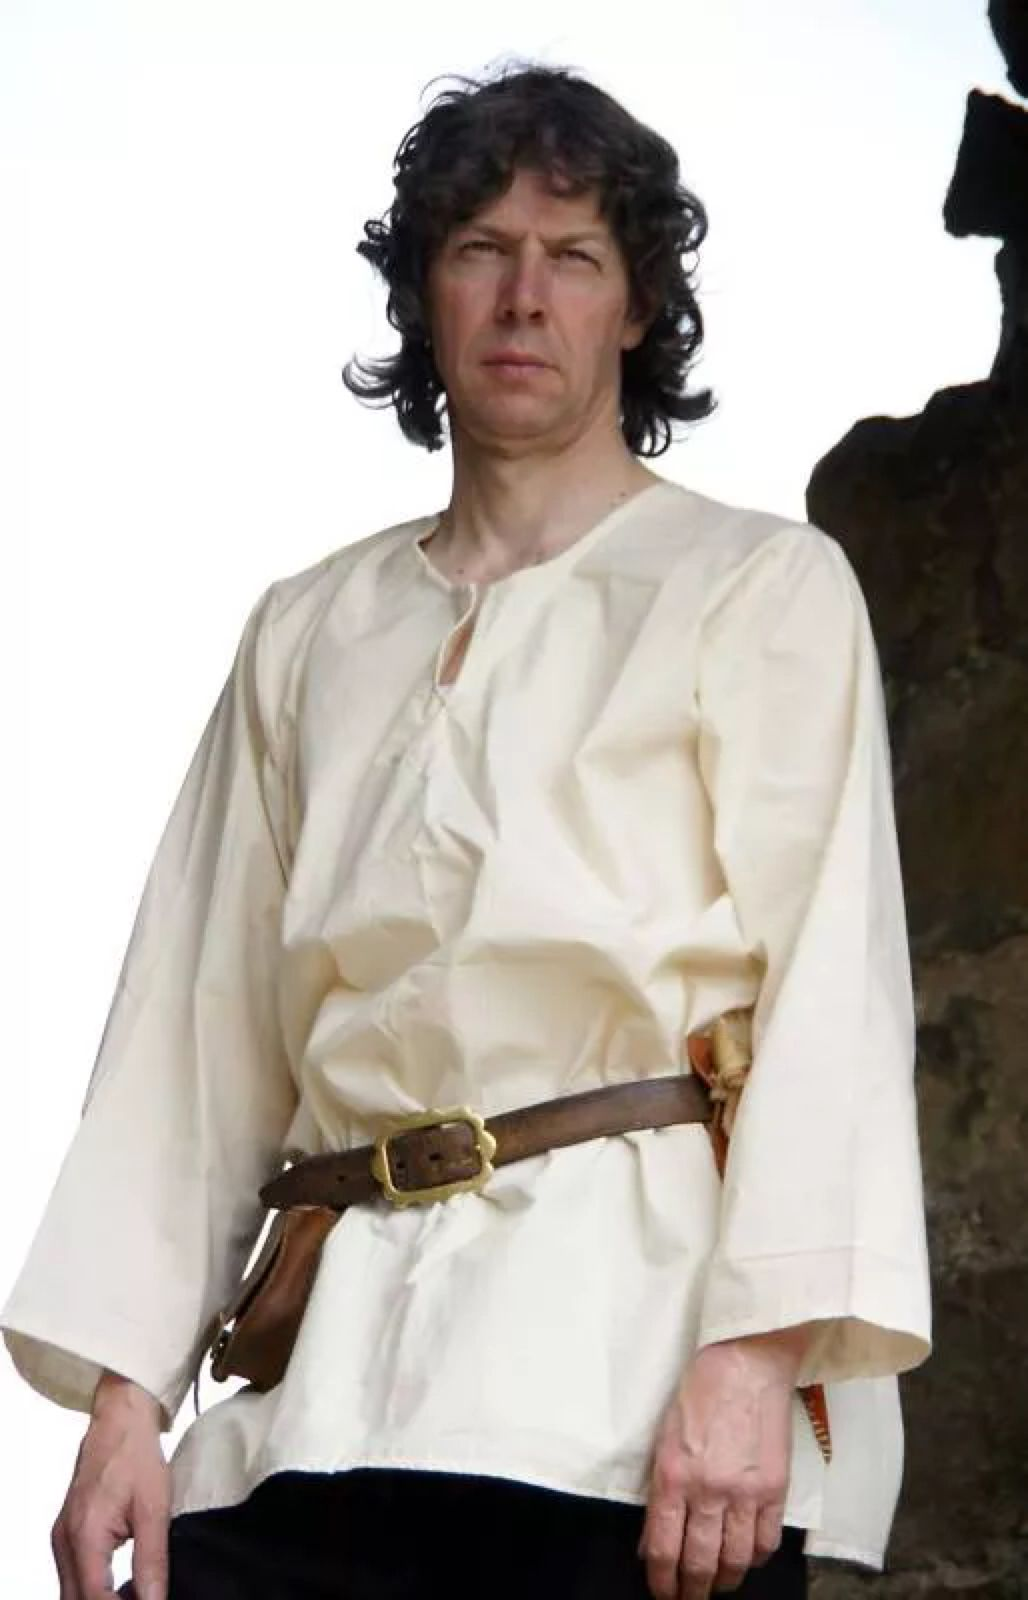 Medieval//LARP//SCA re enactment BASIC SHIRT in all sizes male sizes SMALL-XXXXL